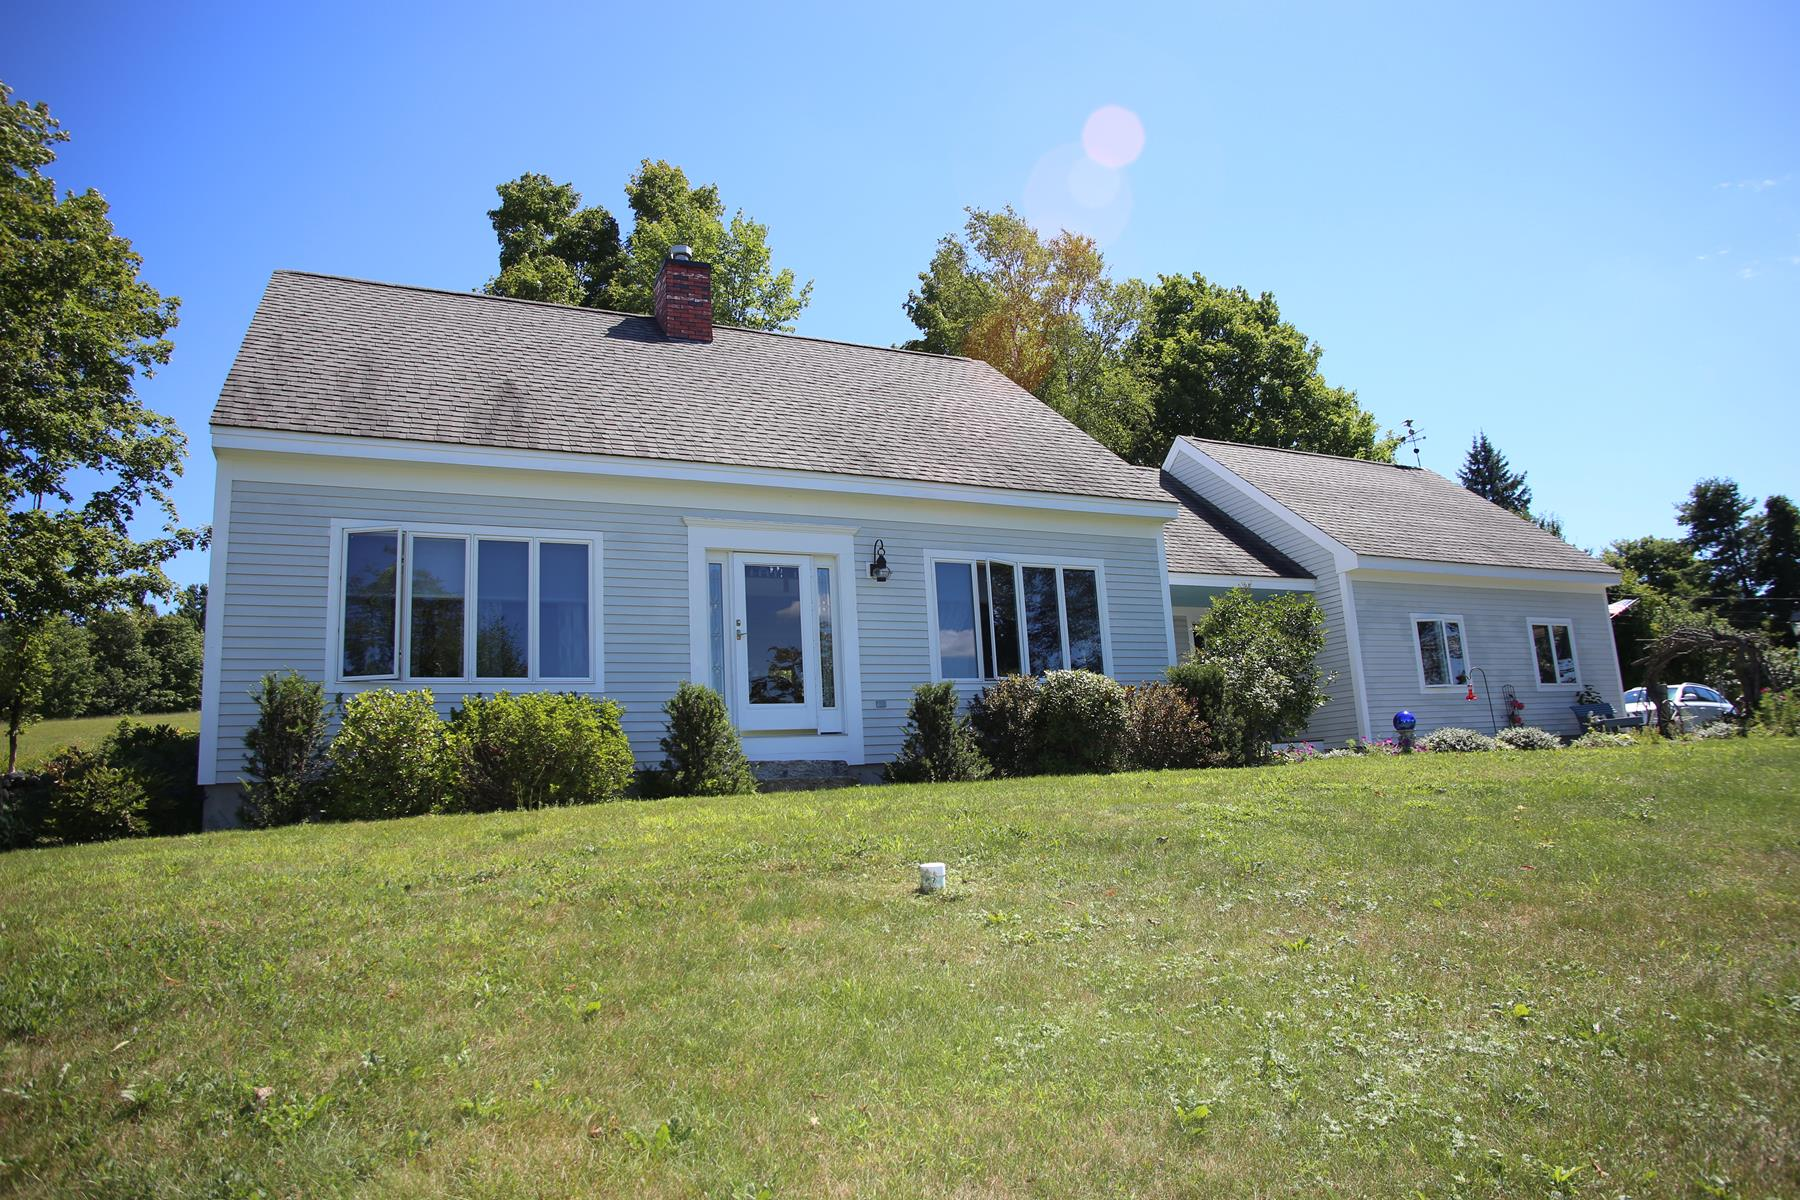 Single Family Home for Sale at 267 Kearsarge Mountain Road, Wilmot 267 Kearsarge Mountain Rd Wilmot, New Hampshire, 03287 United States